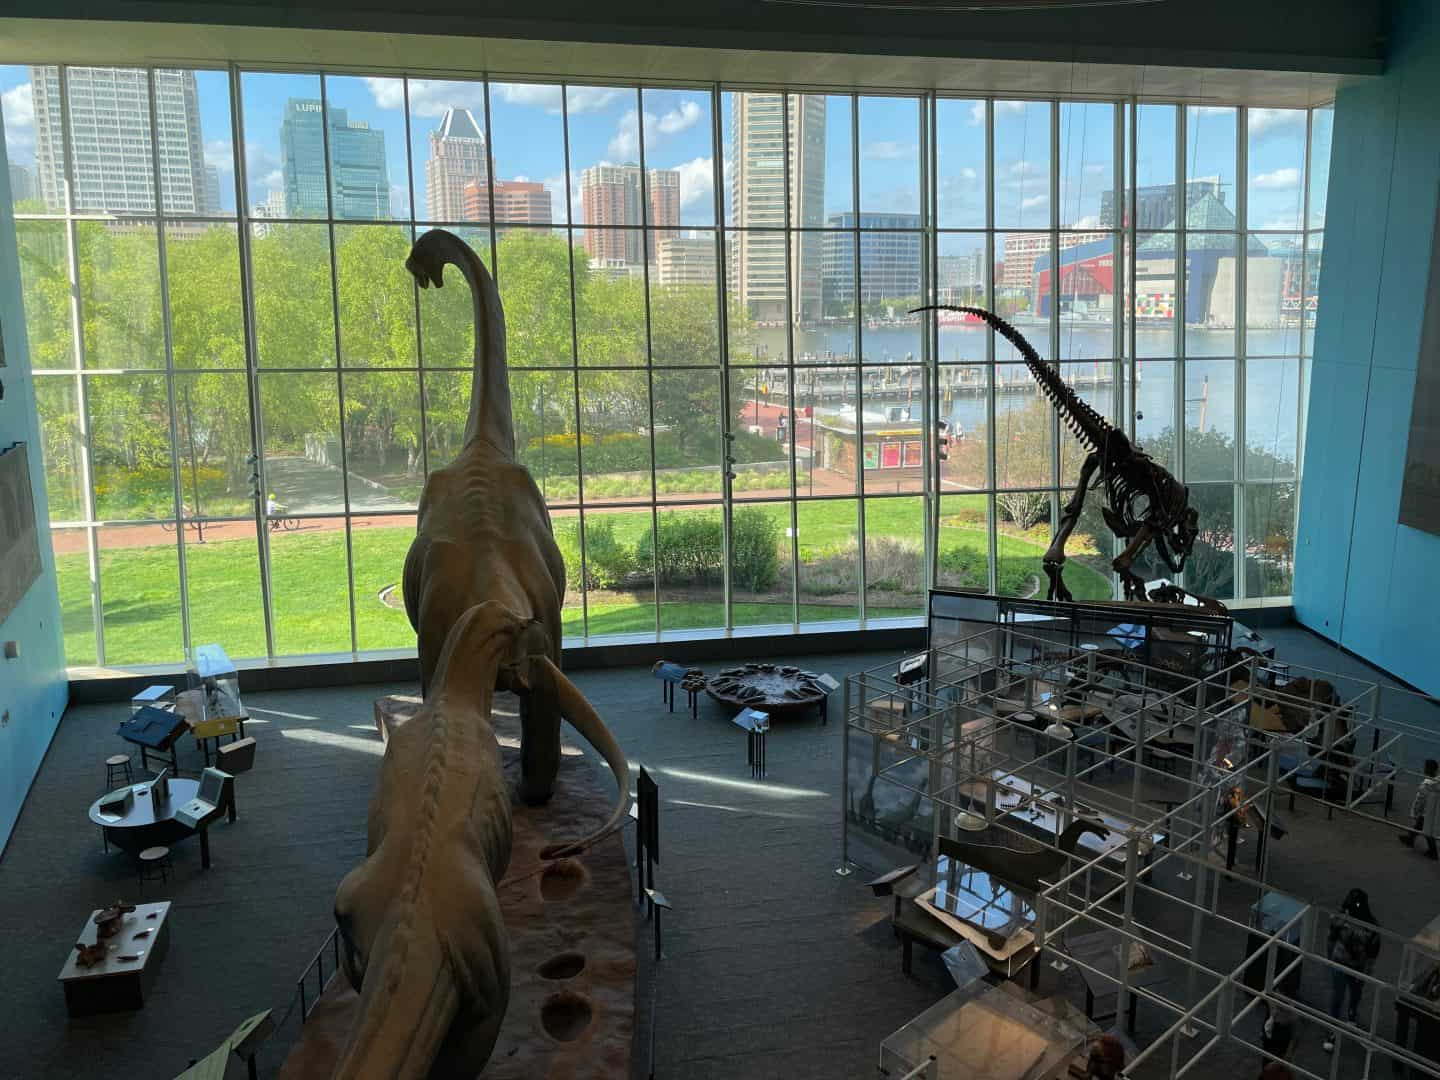 maryland science center parking is just a block away to the left of this view.